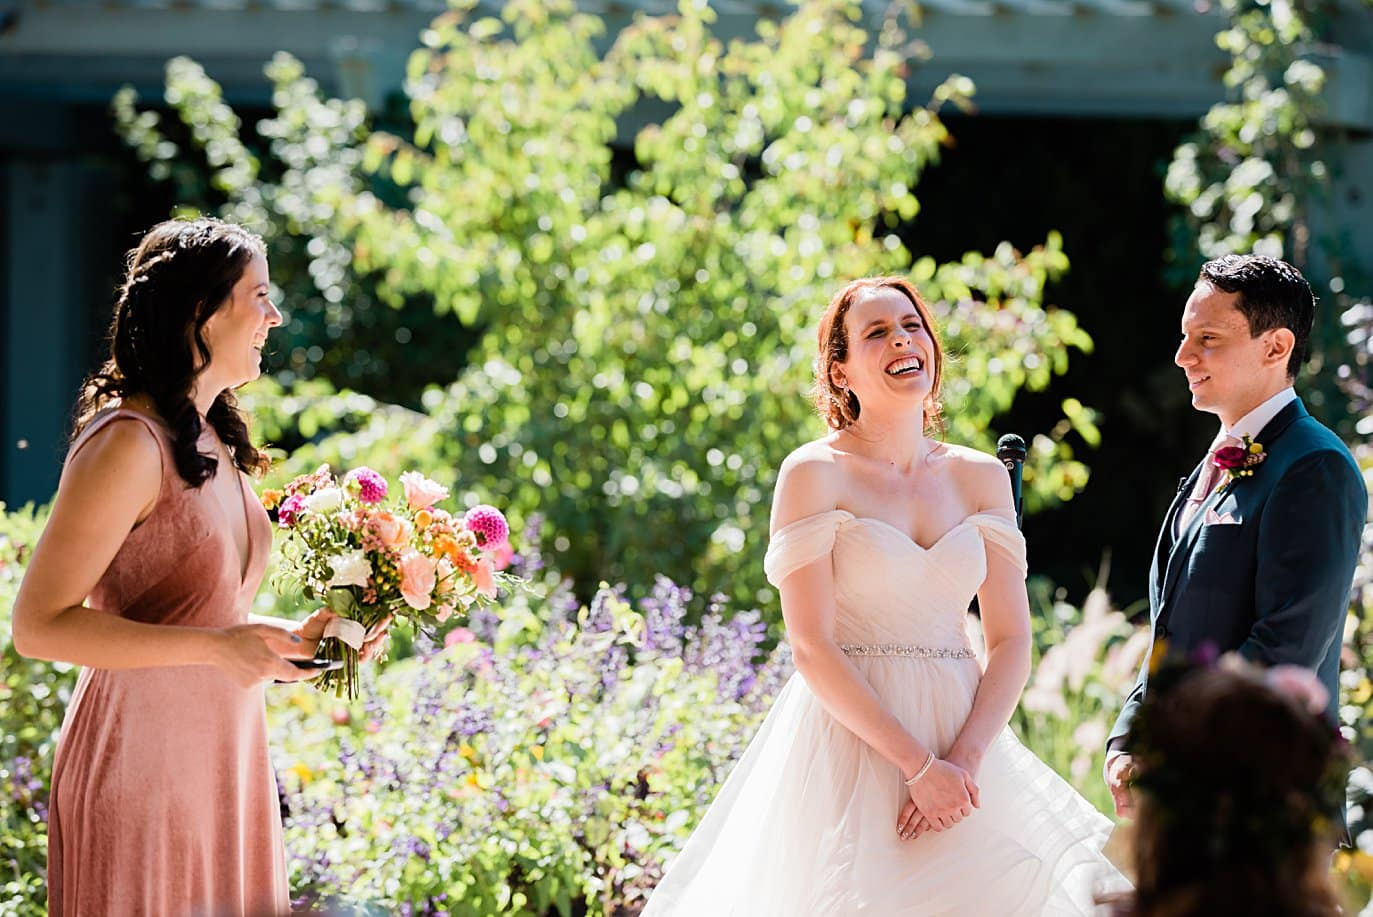 bride listens to maid of honor give speech during wedding ceremony at Denver Botanic Gardens microwedding by Denver wedding photographer Jennie Crate